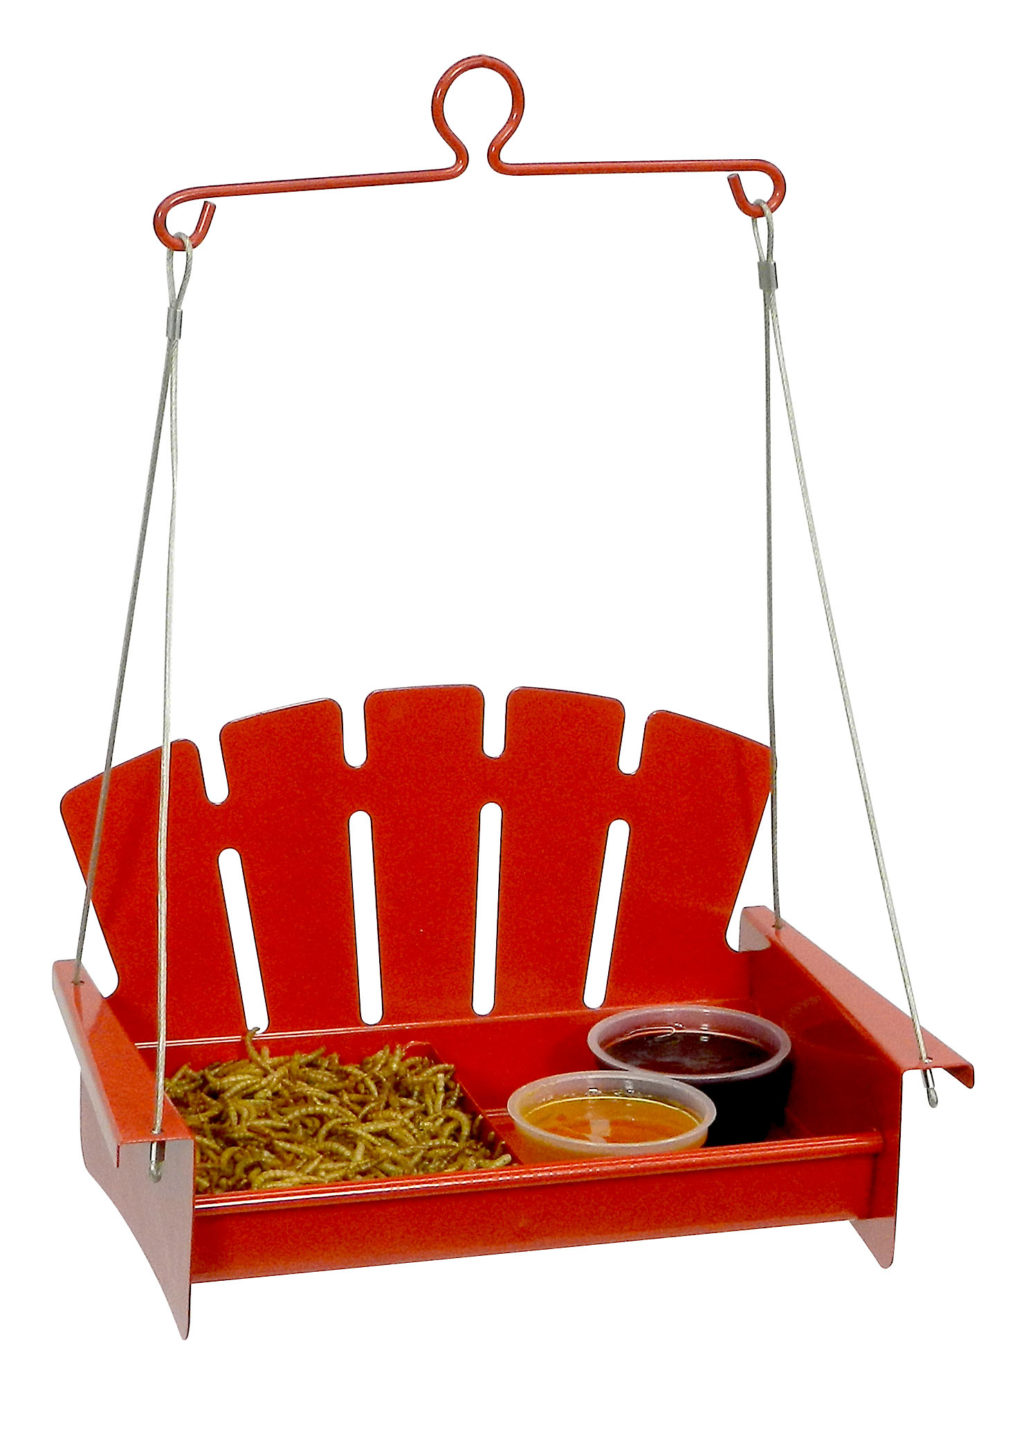 Red Snacks 'n' Treats Platform Swing filled with mealworms and jelly